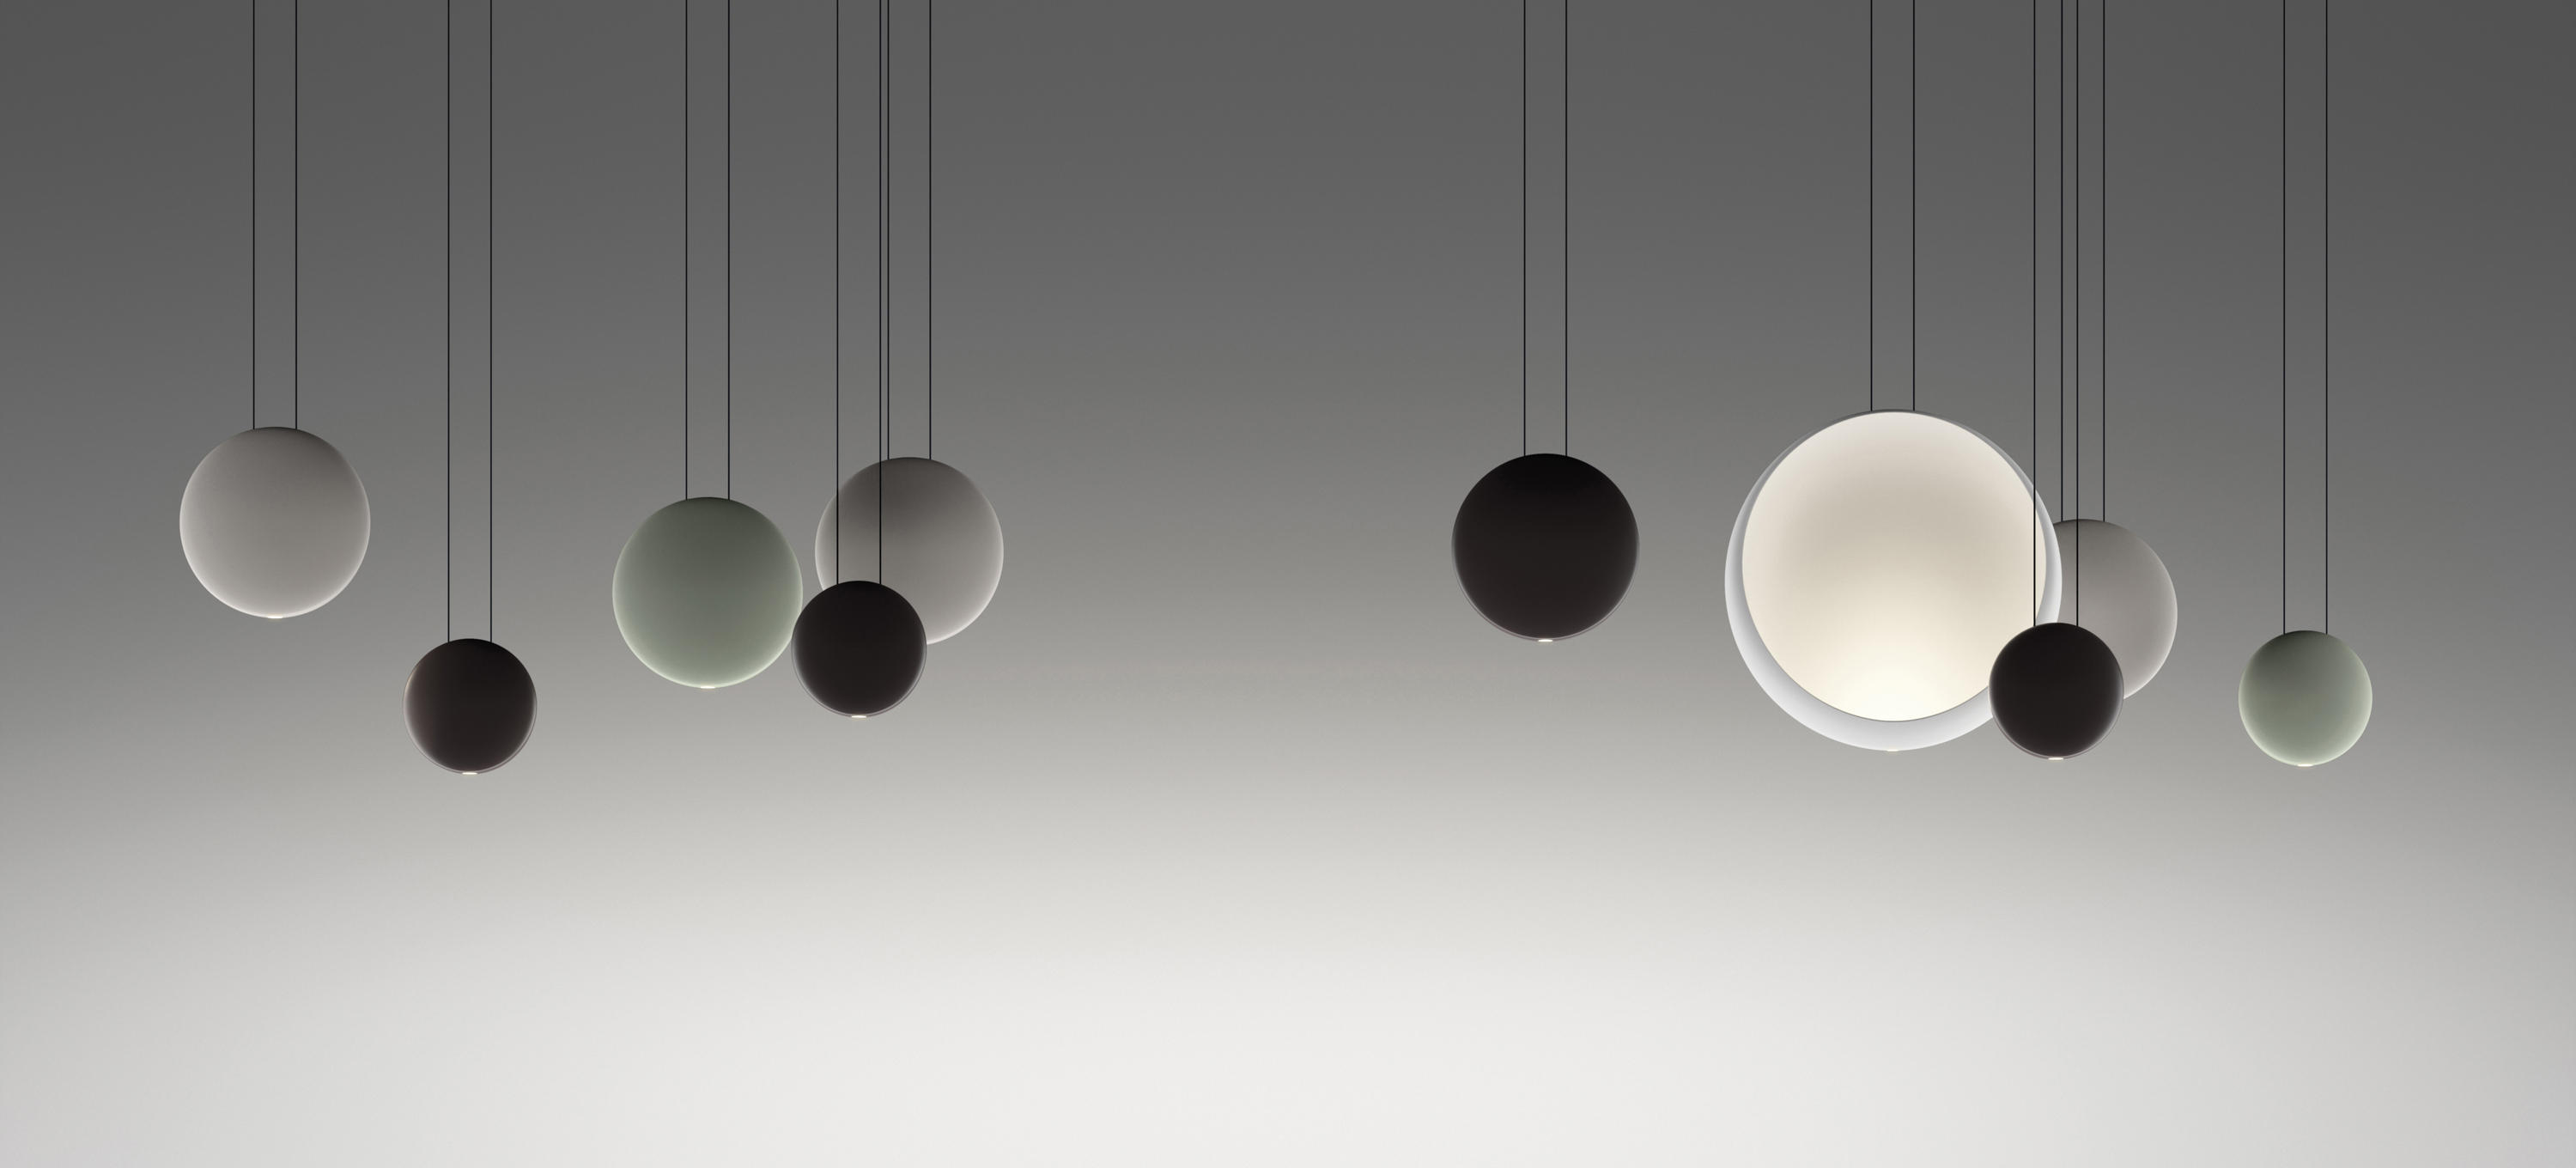 Cosmos 2500 Pendant Lamp Suspended Lights From Vibia